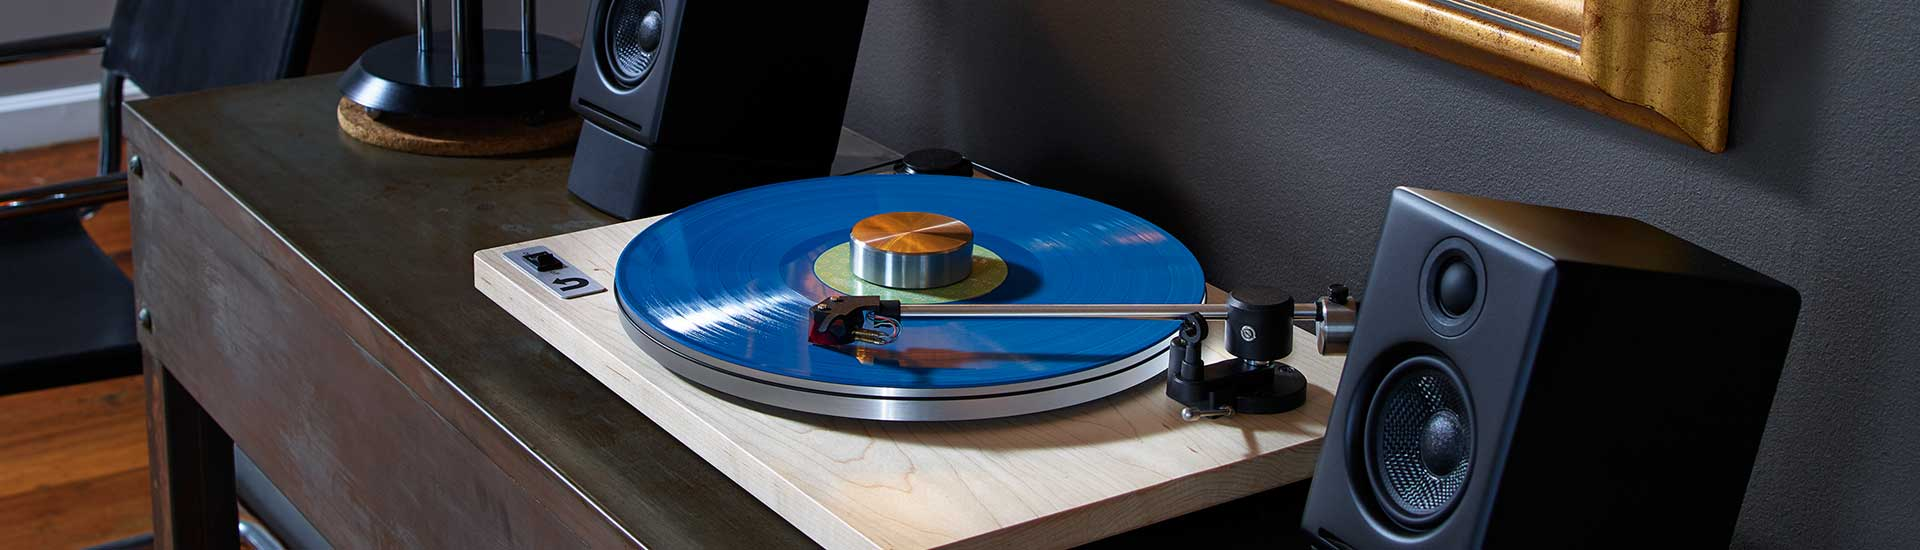 New Brands in October: Discover the Latest at World Wide Stereo